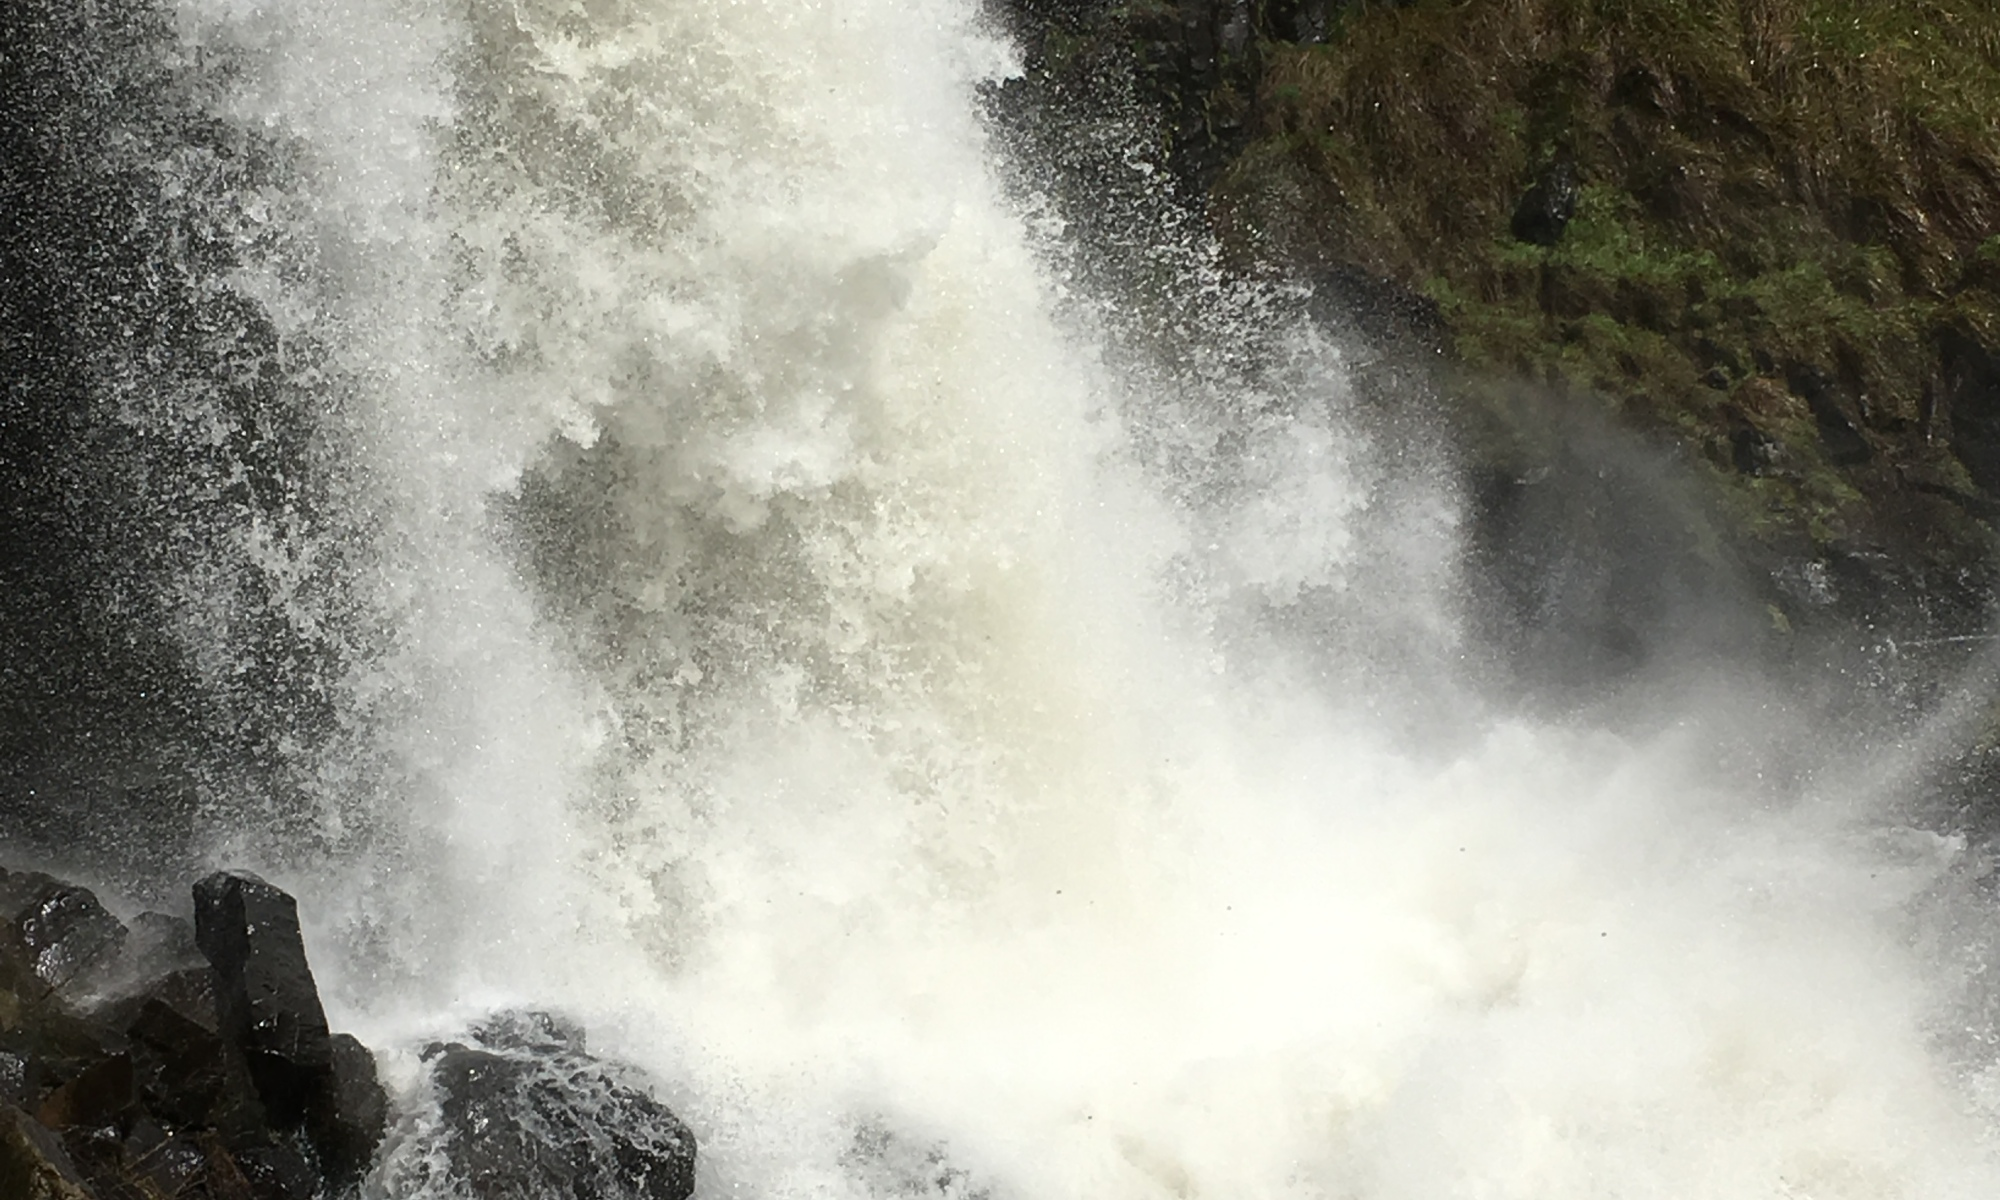 Water tumbling down near Tumbarumba at Paddy's River Falls